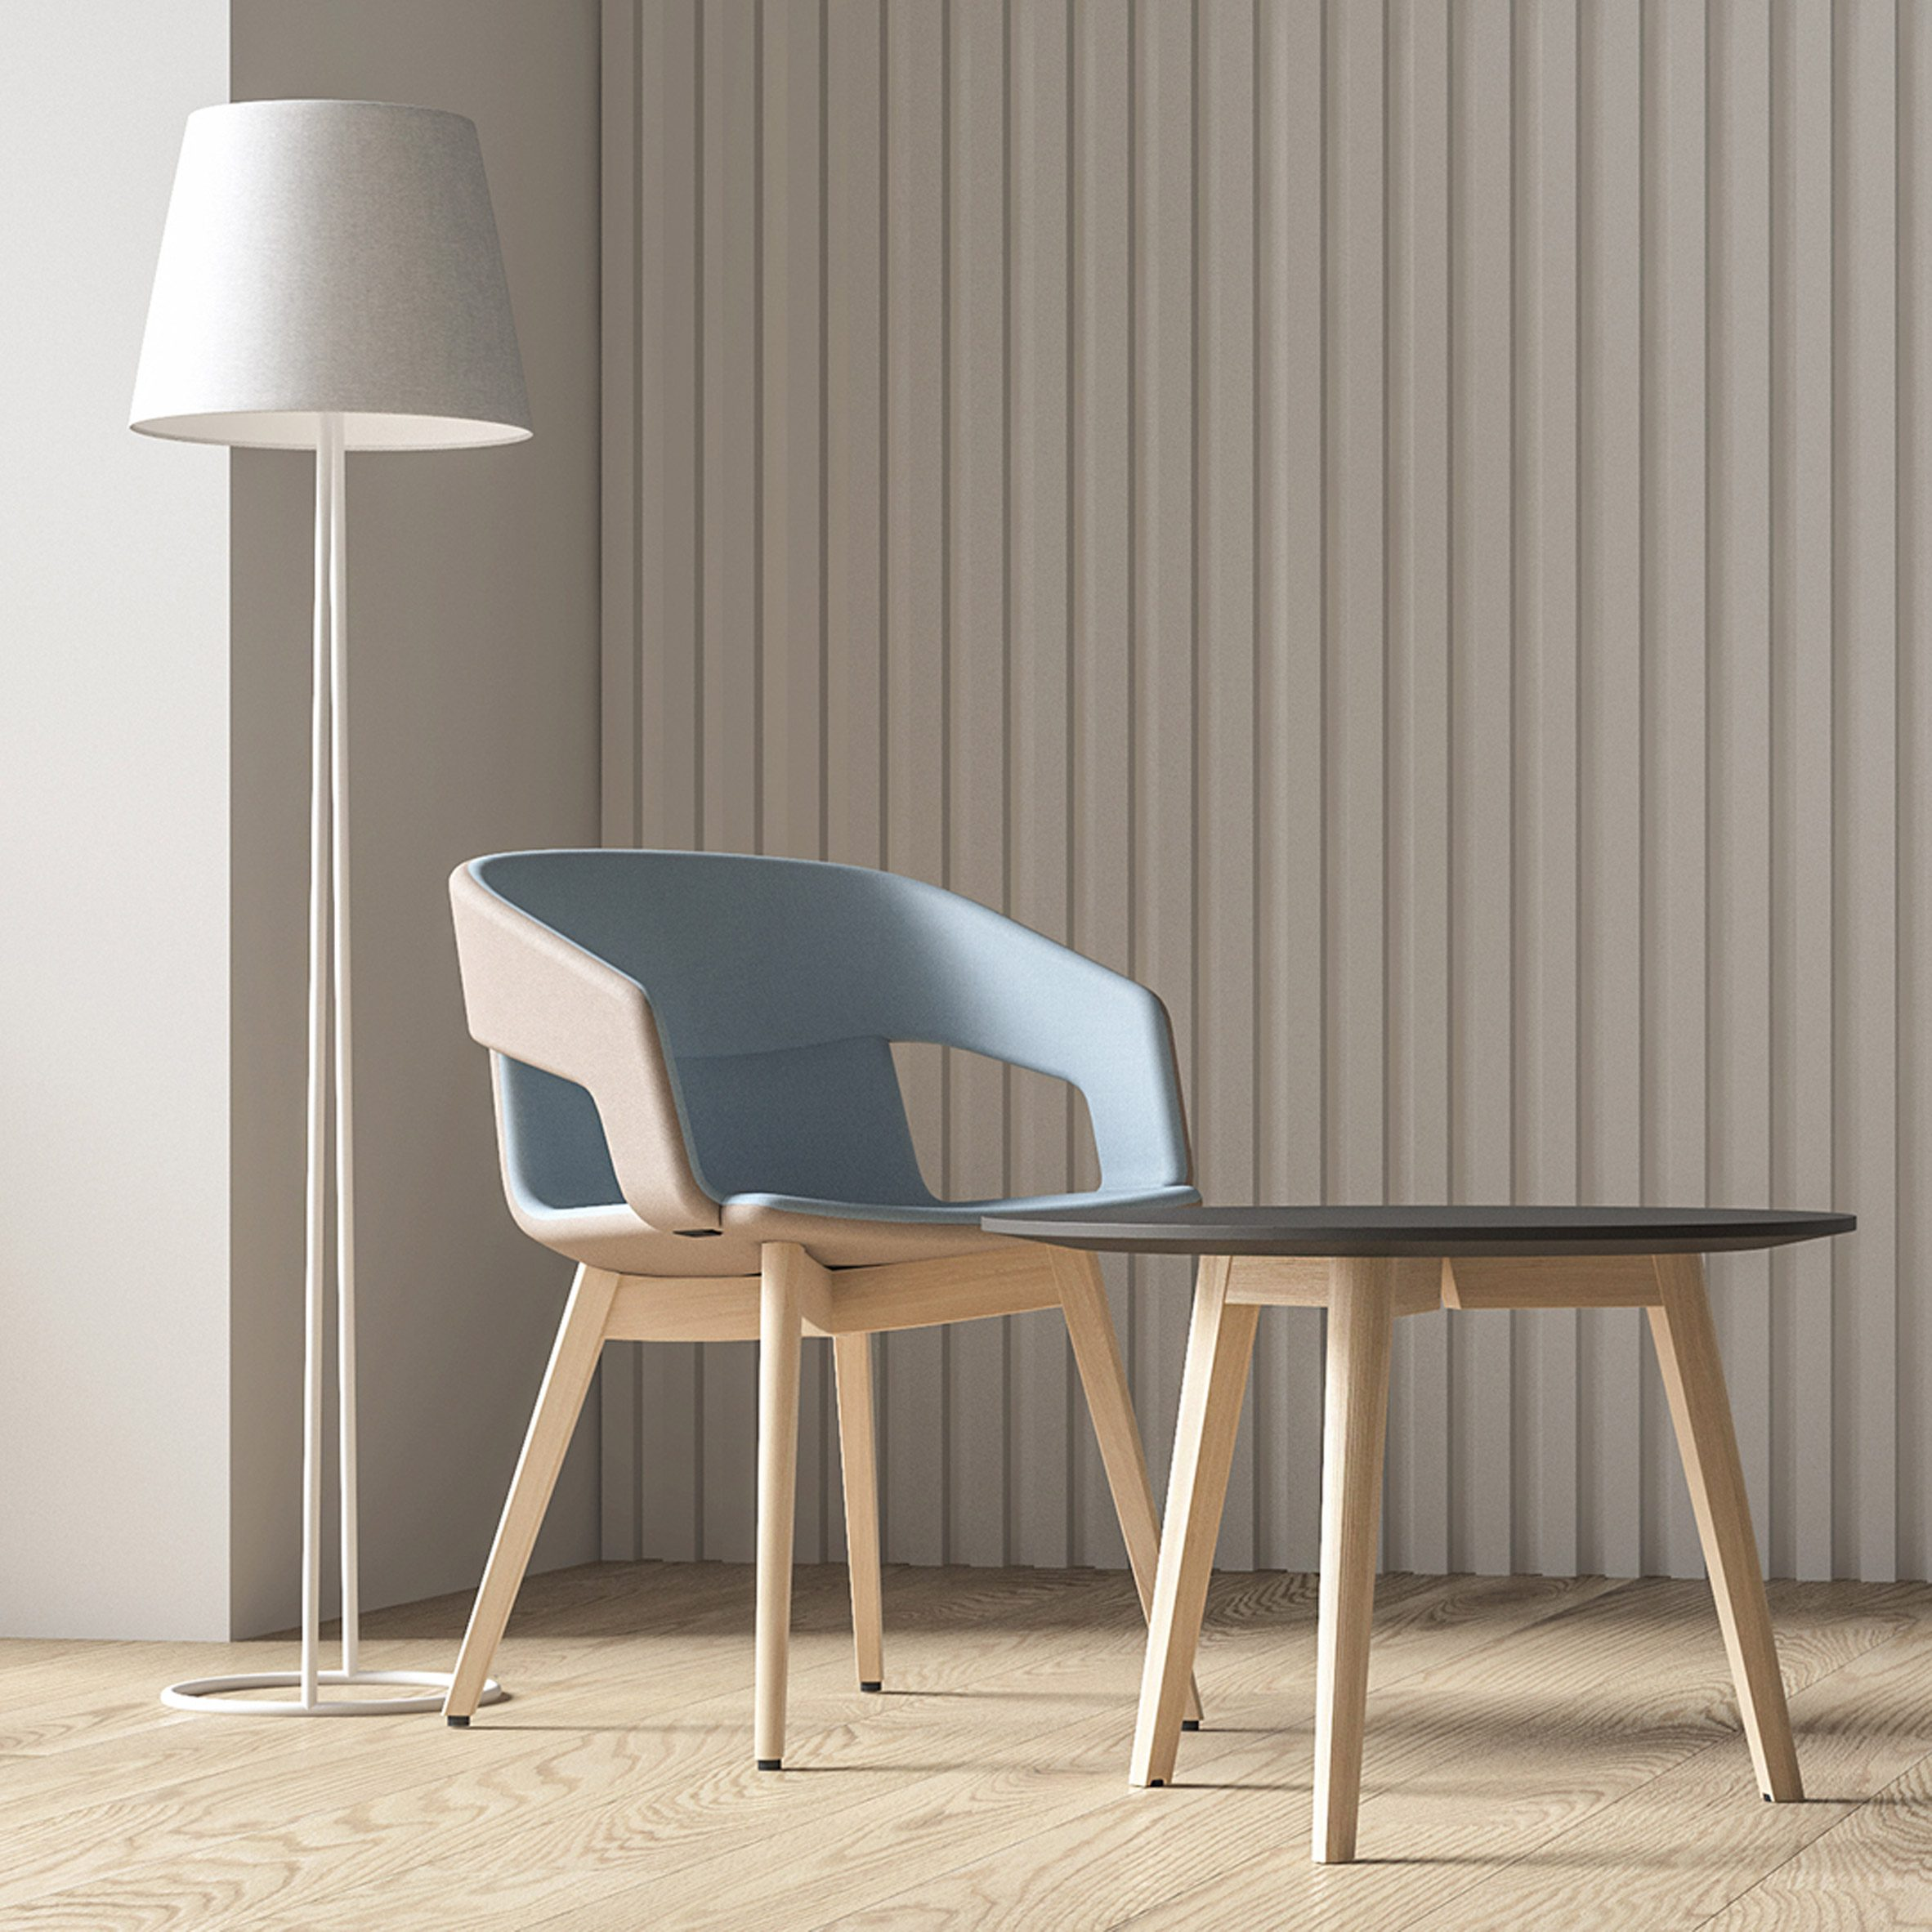 Twist&Sit Soft seating by Strand + Hvass for Narbutas